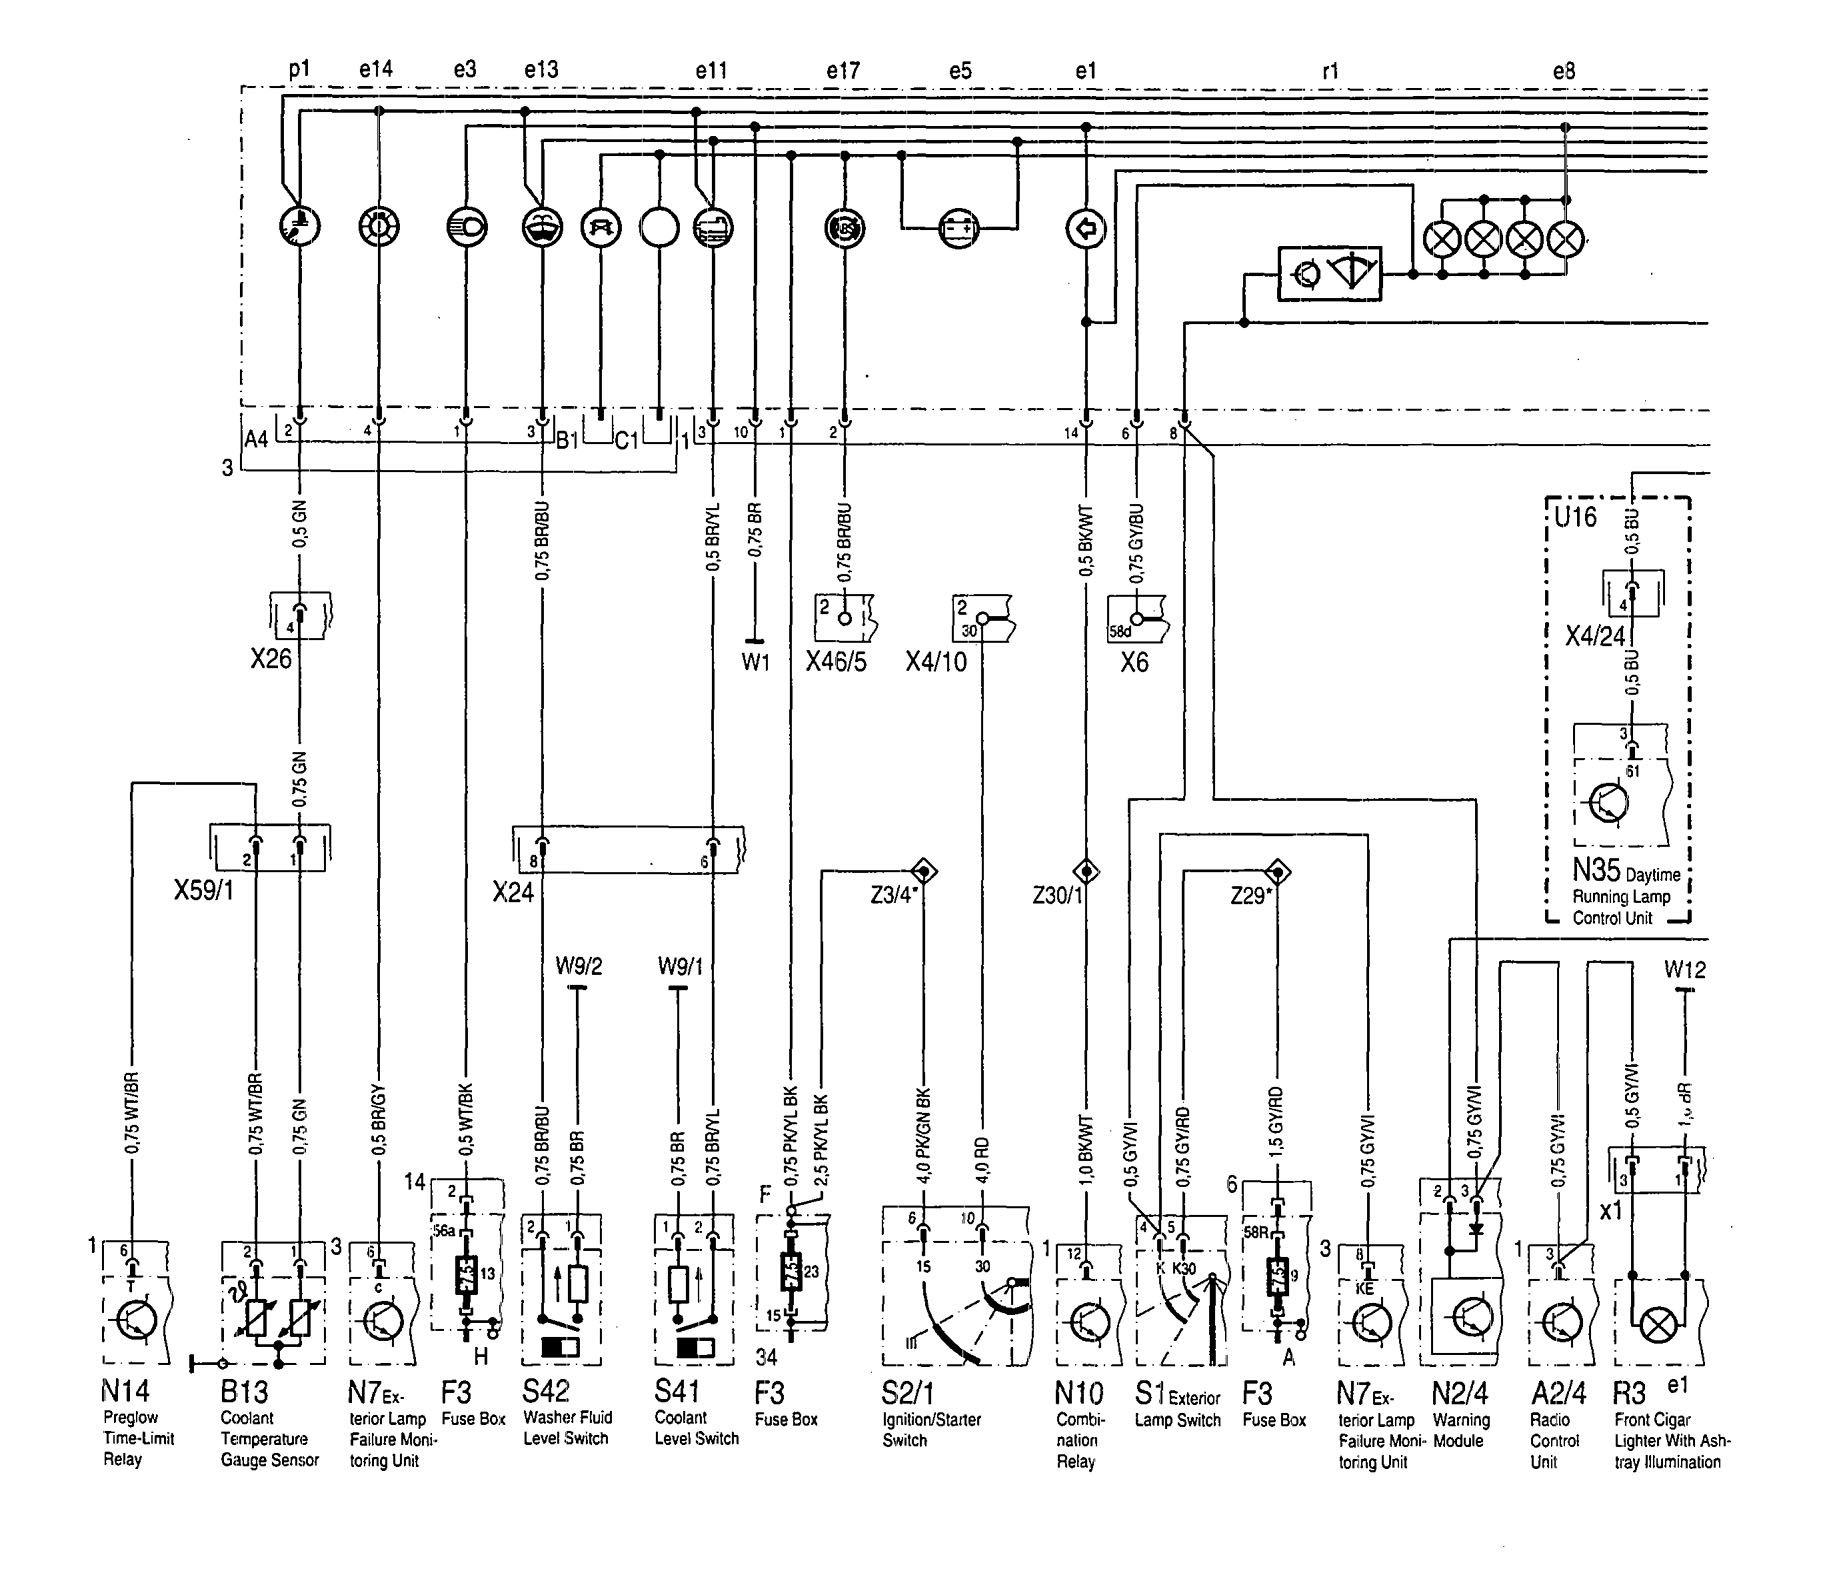 Mercedes Benz 300sd 1992 1993 Wiring Diagrams Saab 900 Diagram Instrumentation